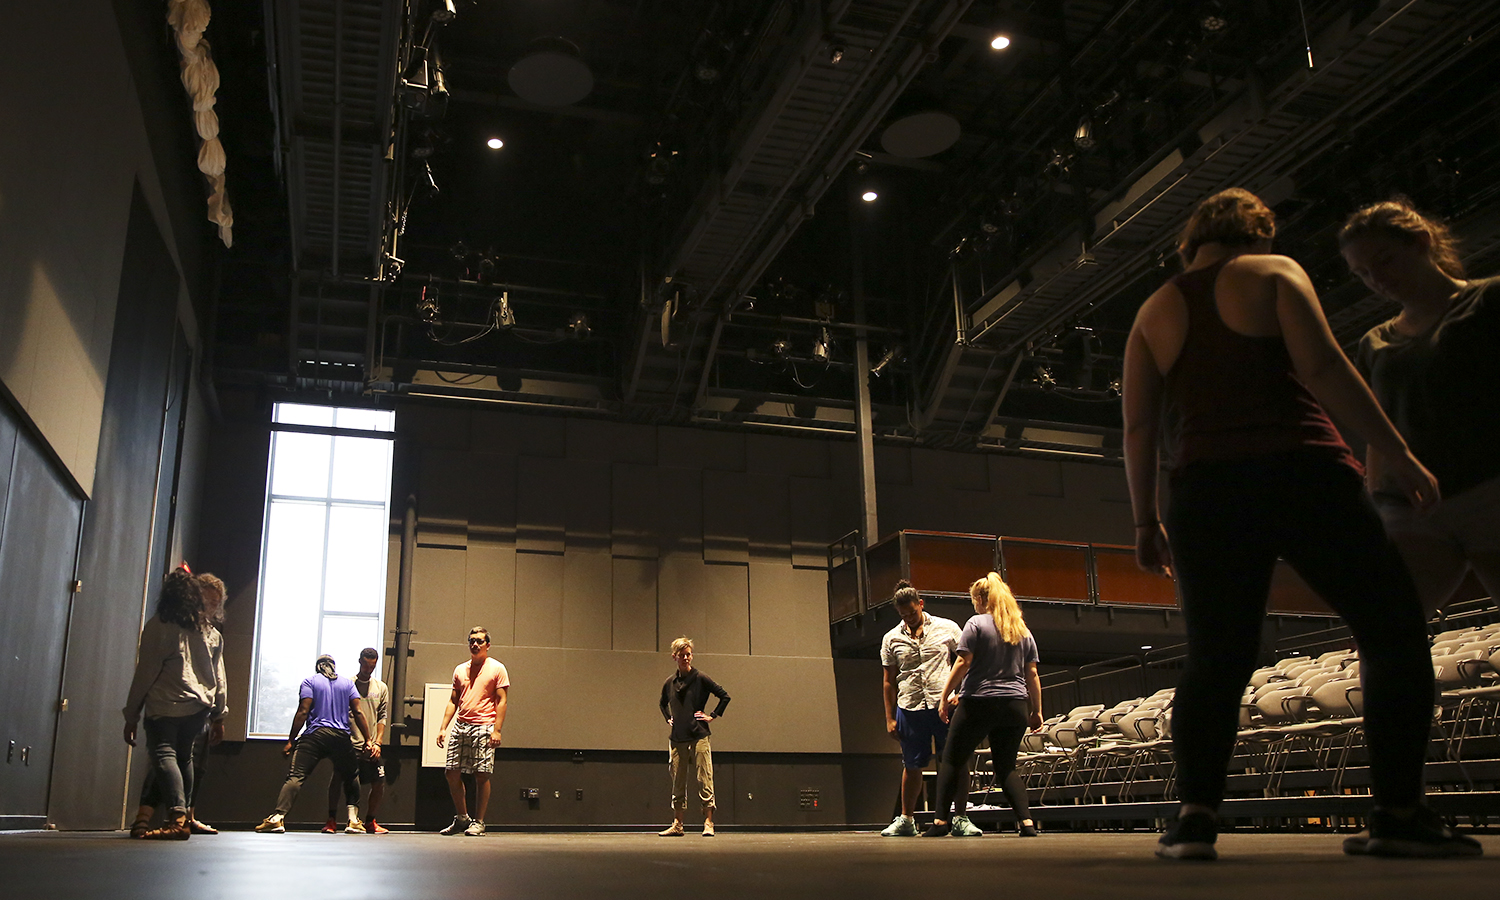 Members of the HWS social justice theatre group Mosaic NY and Associate Professor of Theatre Heather May prepare for the upcoming semester in the McDonald Theatre.